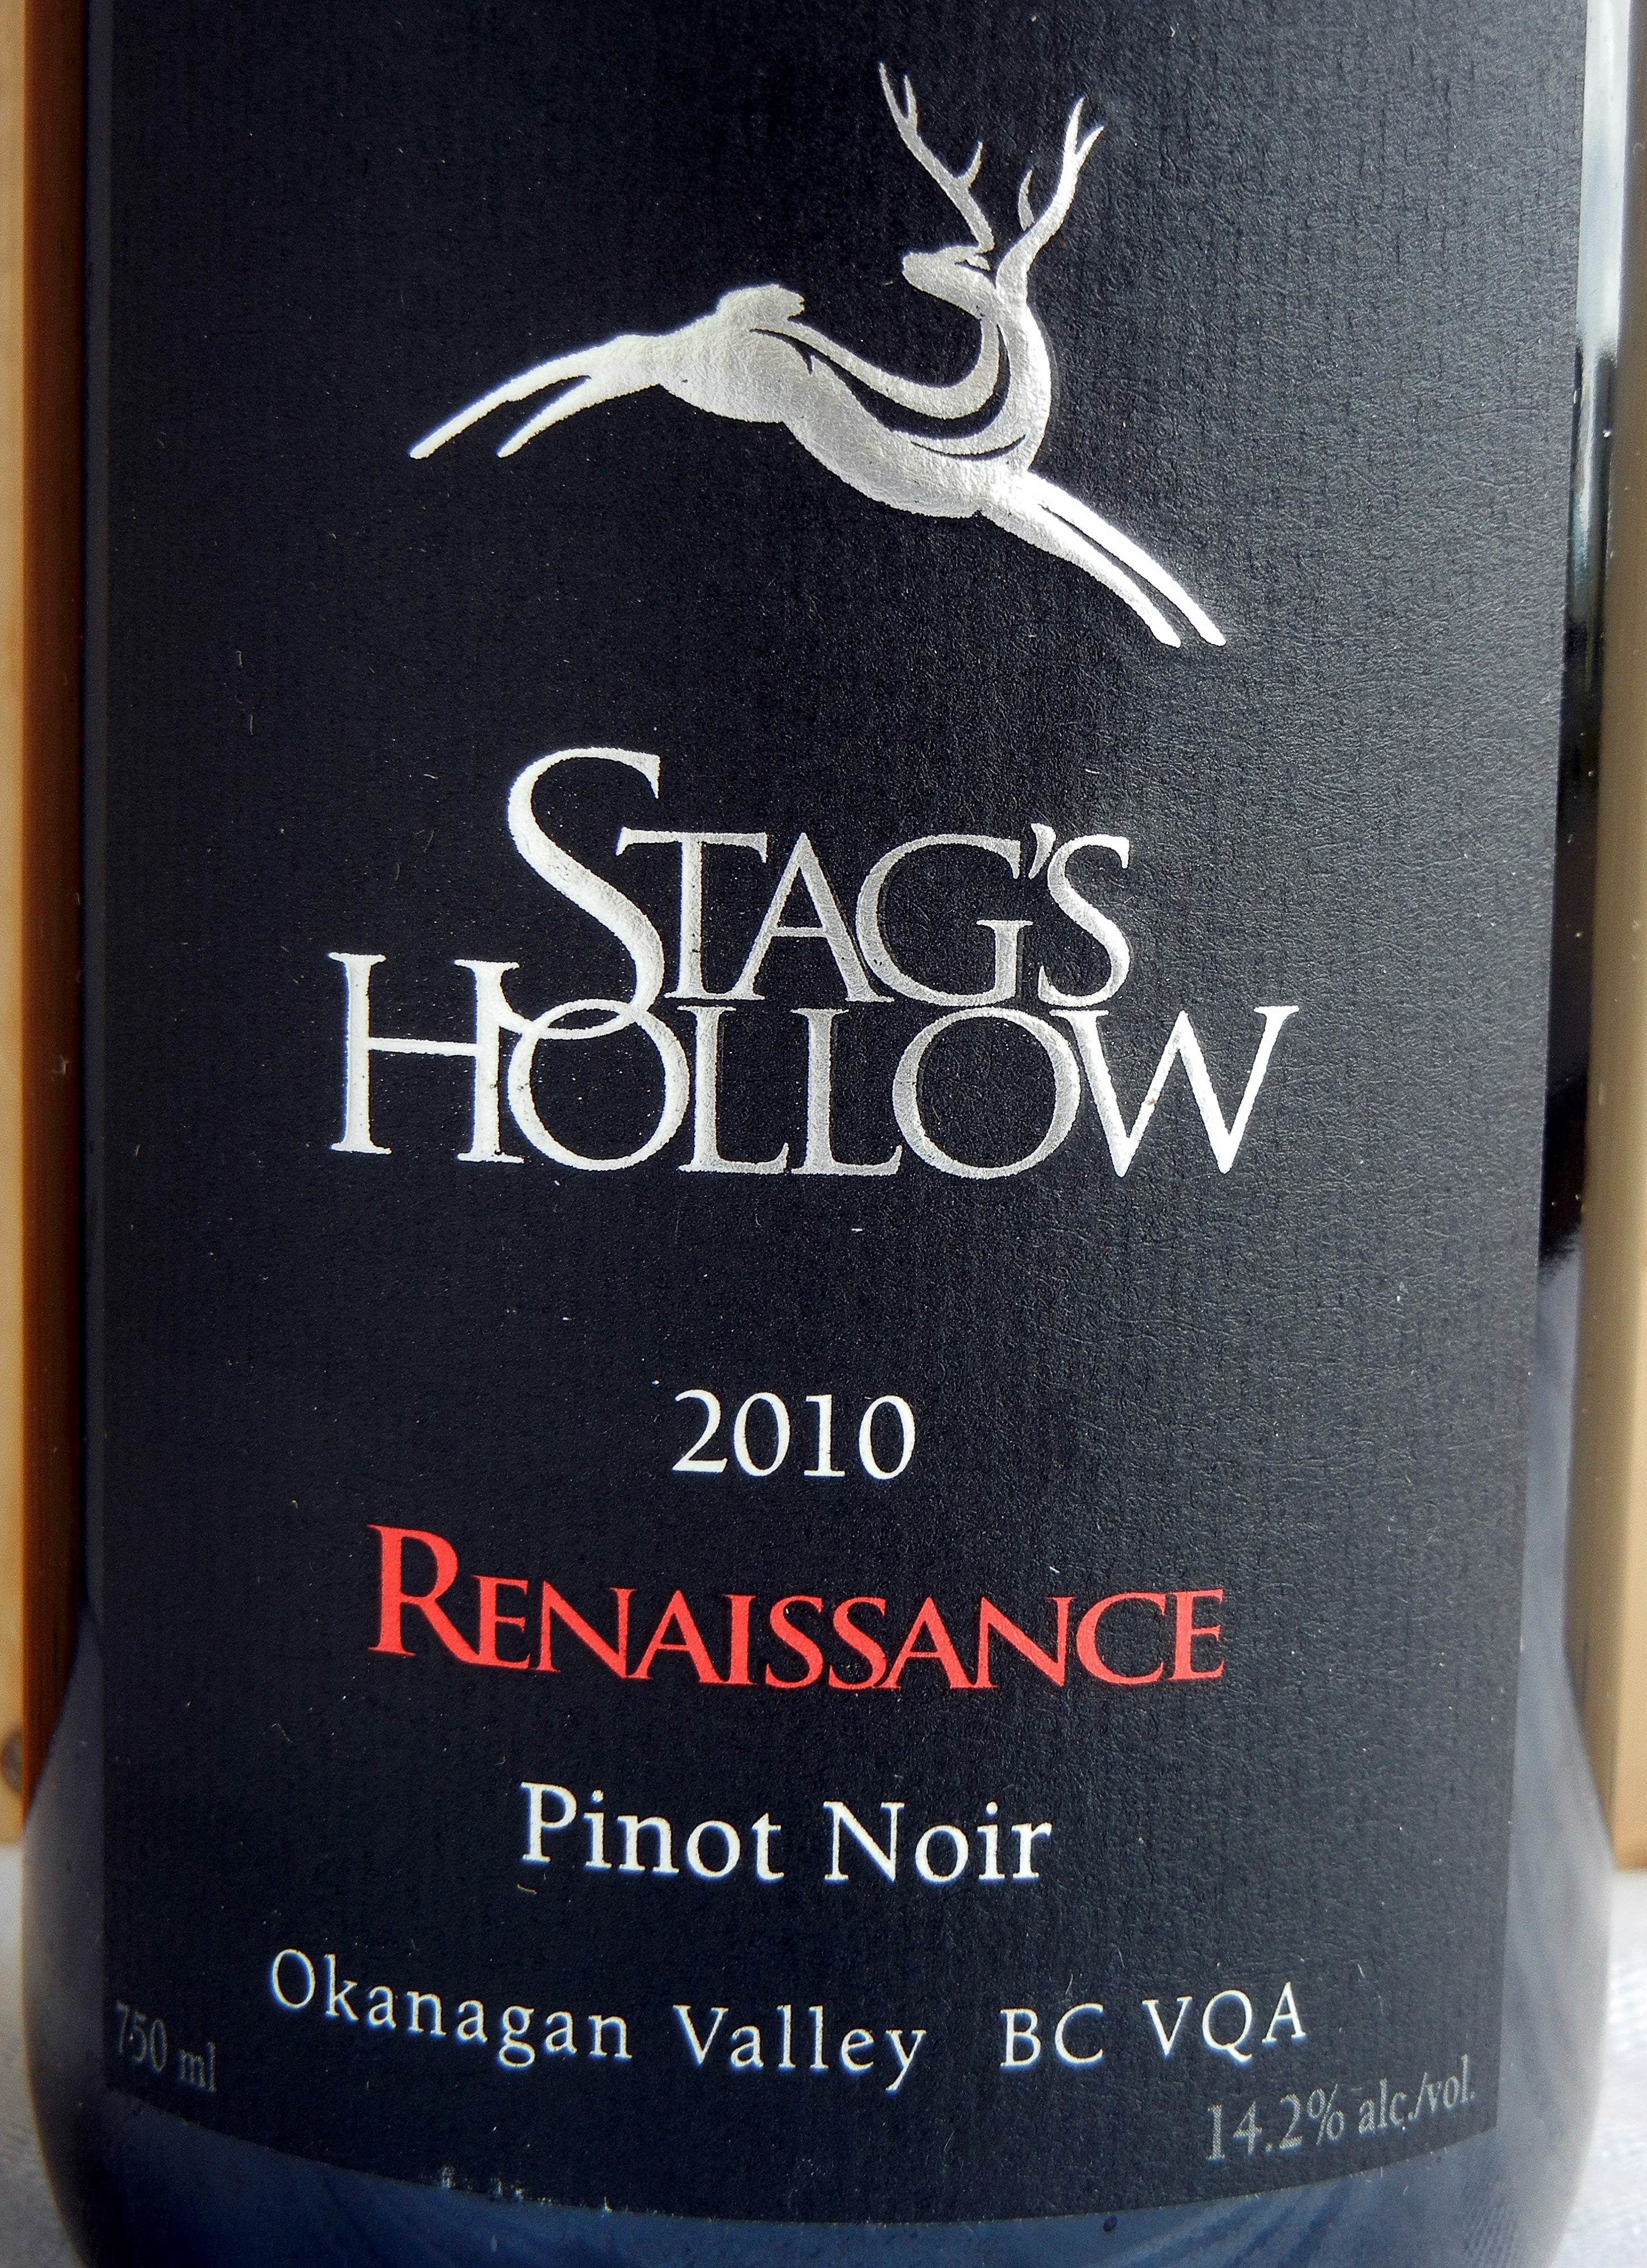 Stag's Hollow Renaissance Pinot Noir 2010 Label - BC Pinot Noir Tasting Review 14